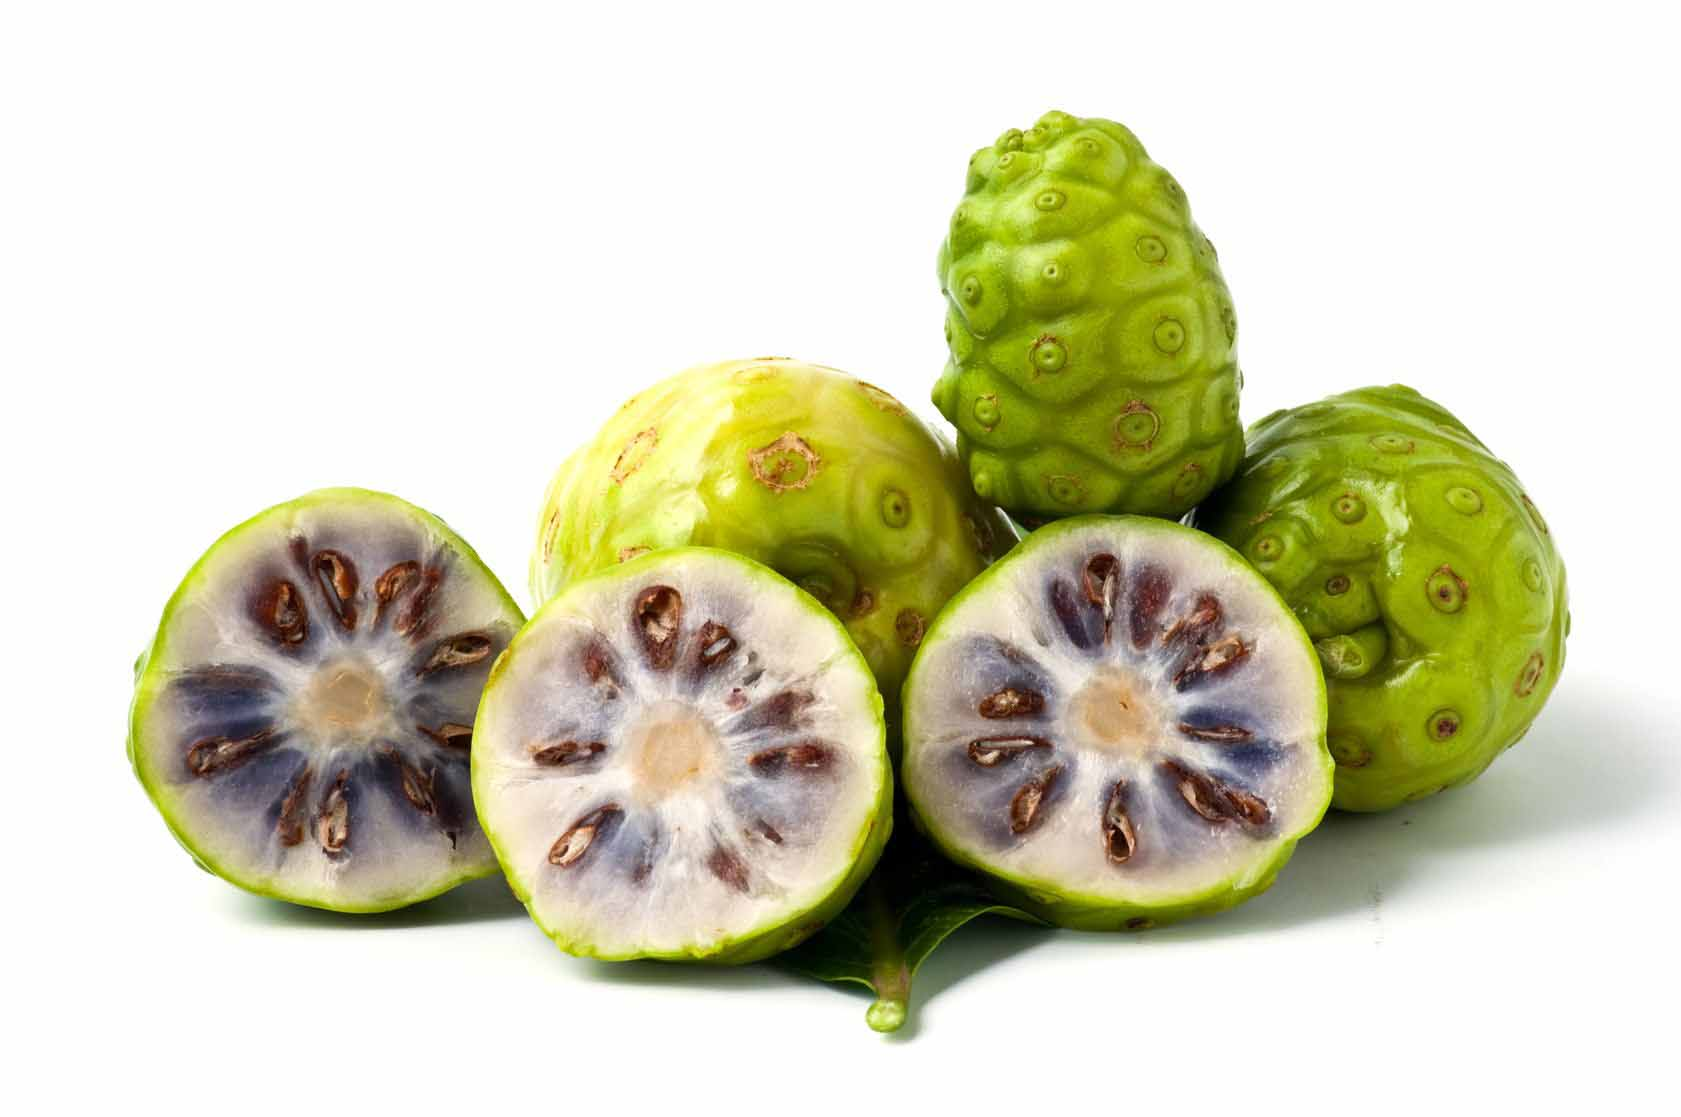 NONI FRUIT USES - SAFIMEX